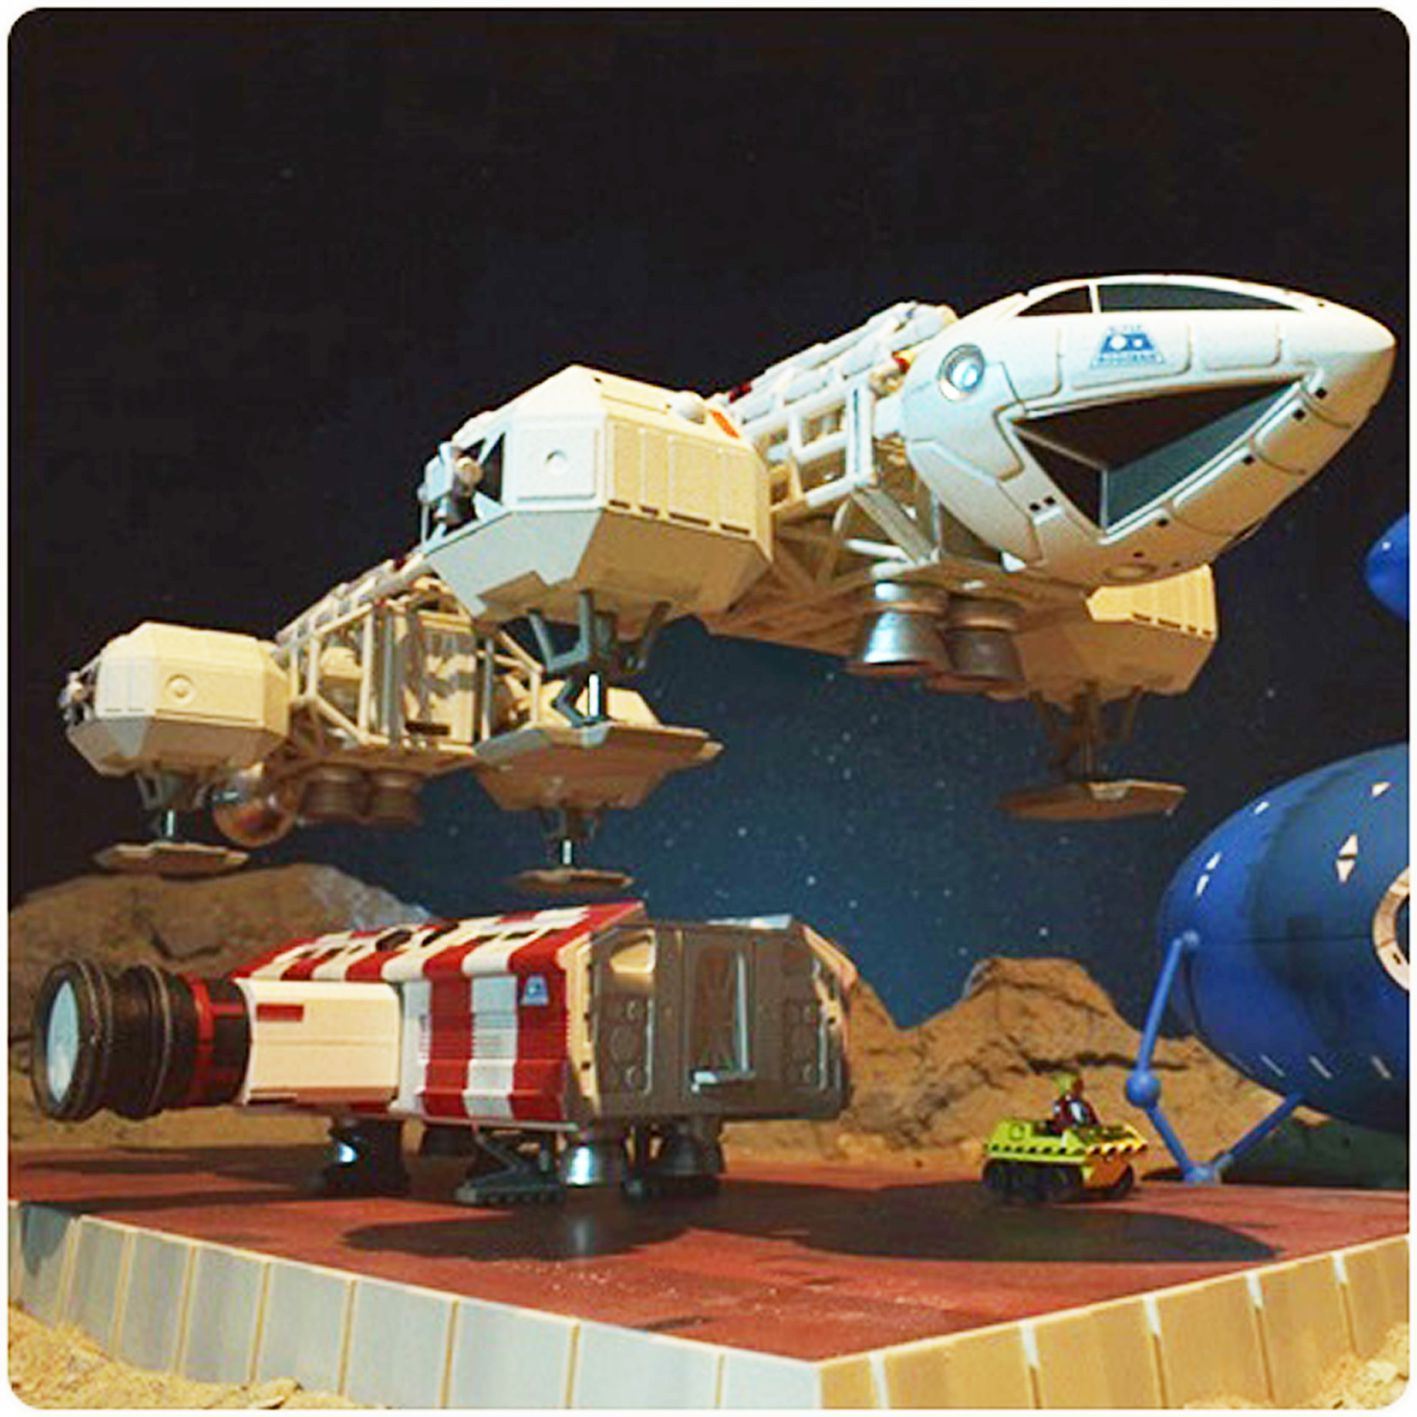 Space 1999 (Cosmos 1999) - Deluxe Limited Edition Diecast Set - Earthbound Eagle & Kaldorian Craft - Sixteen 12